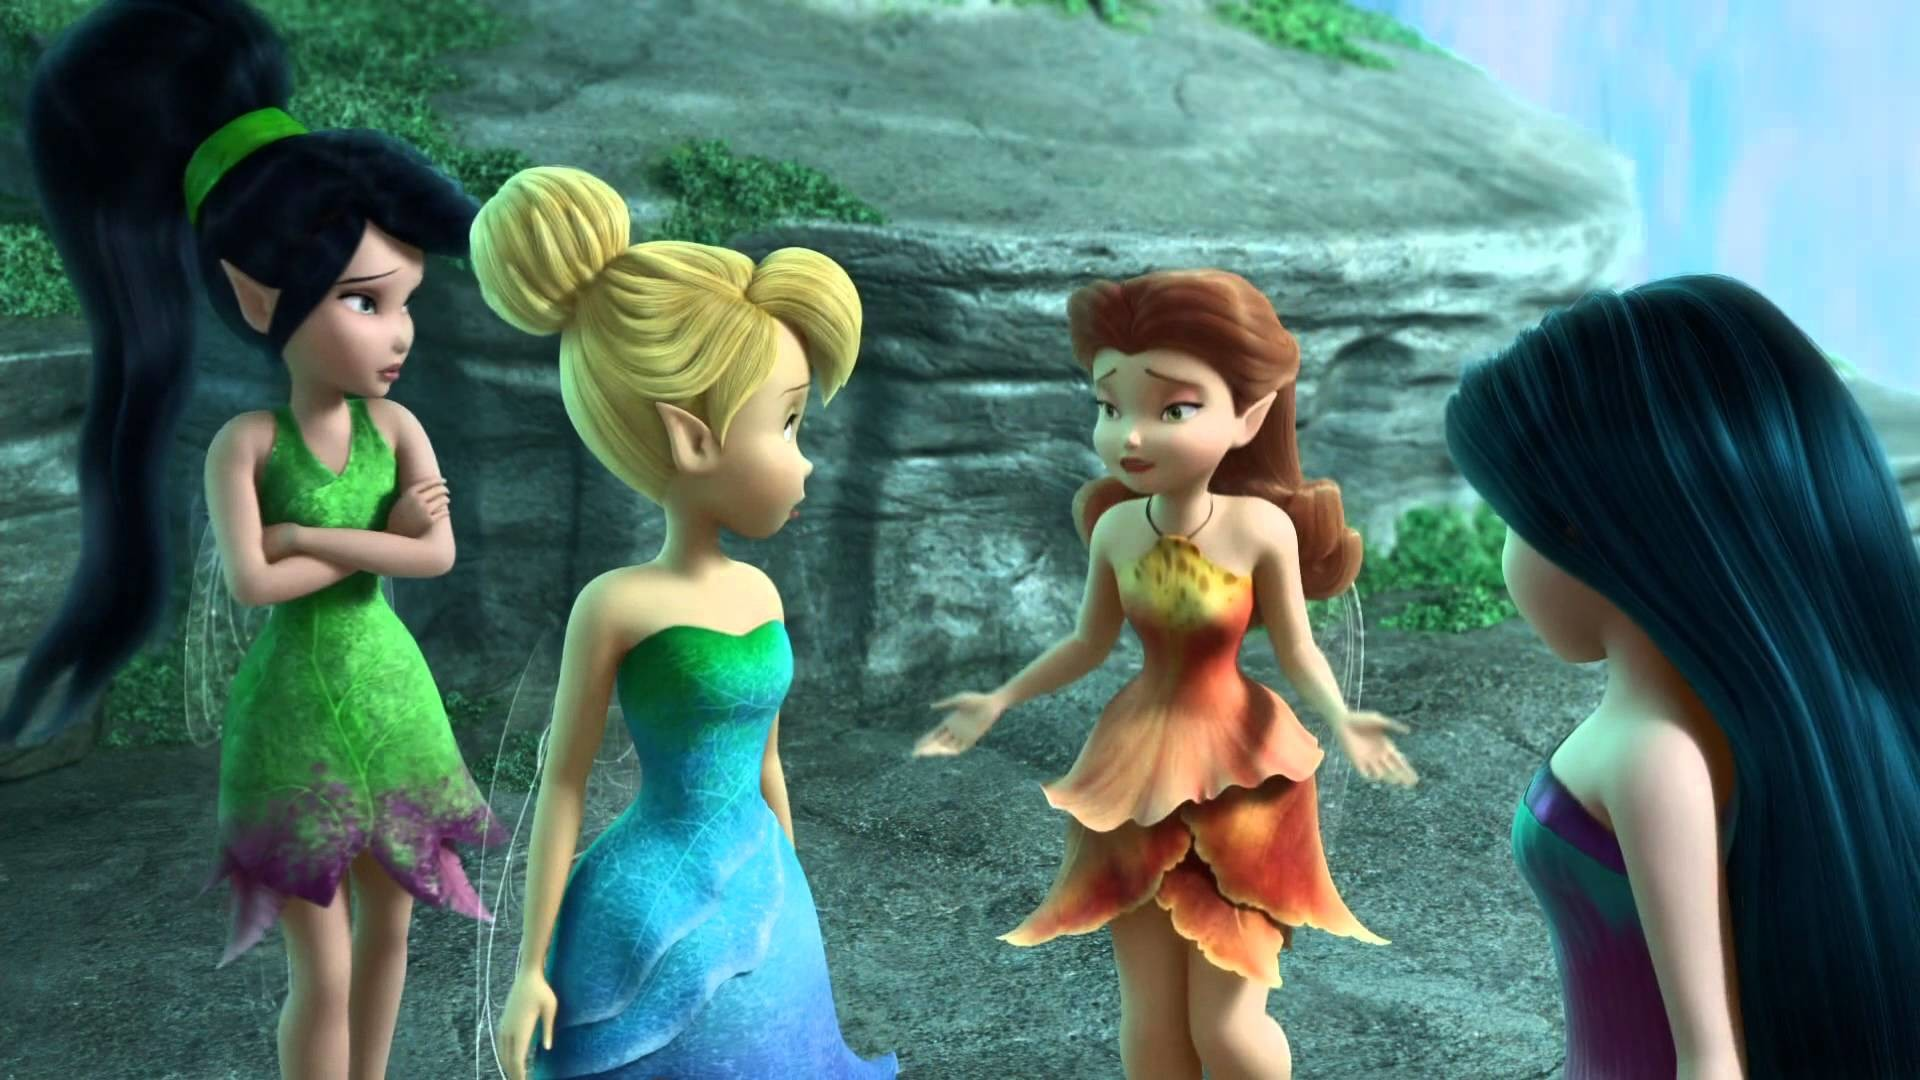 1920x1080 Tinker Bell - Tinker Bell and the Pirate Fairy Sneak Peek 1080p - YouTube